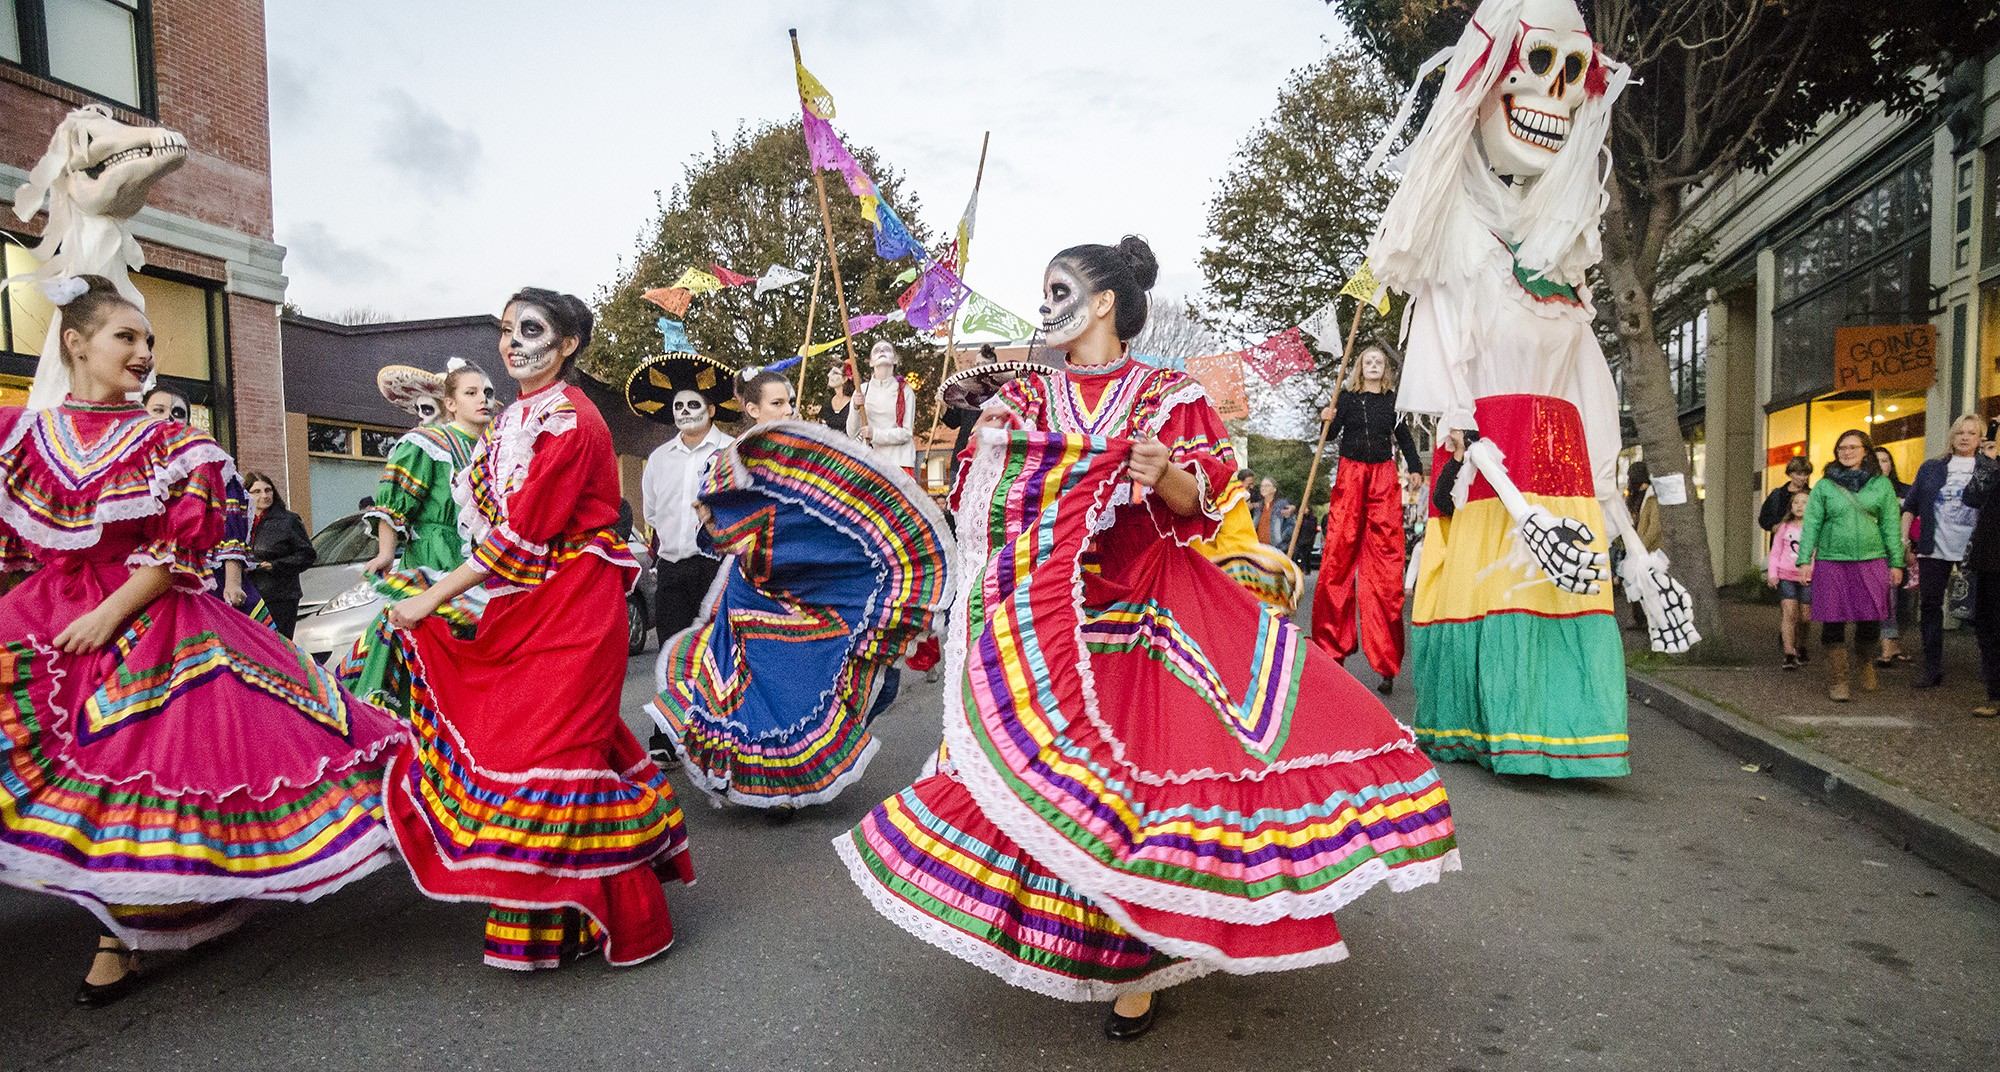 12th_annual_dia_de_los_muertos_celebration_8489